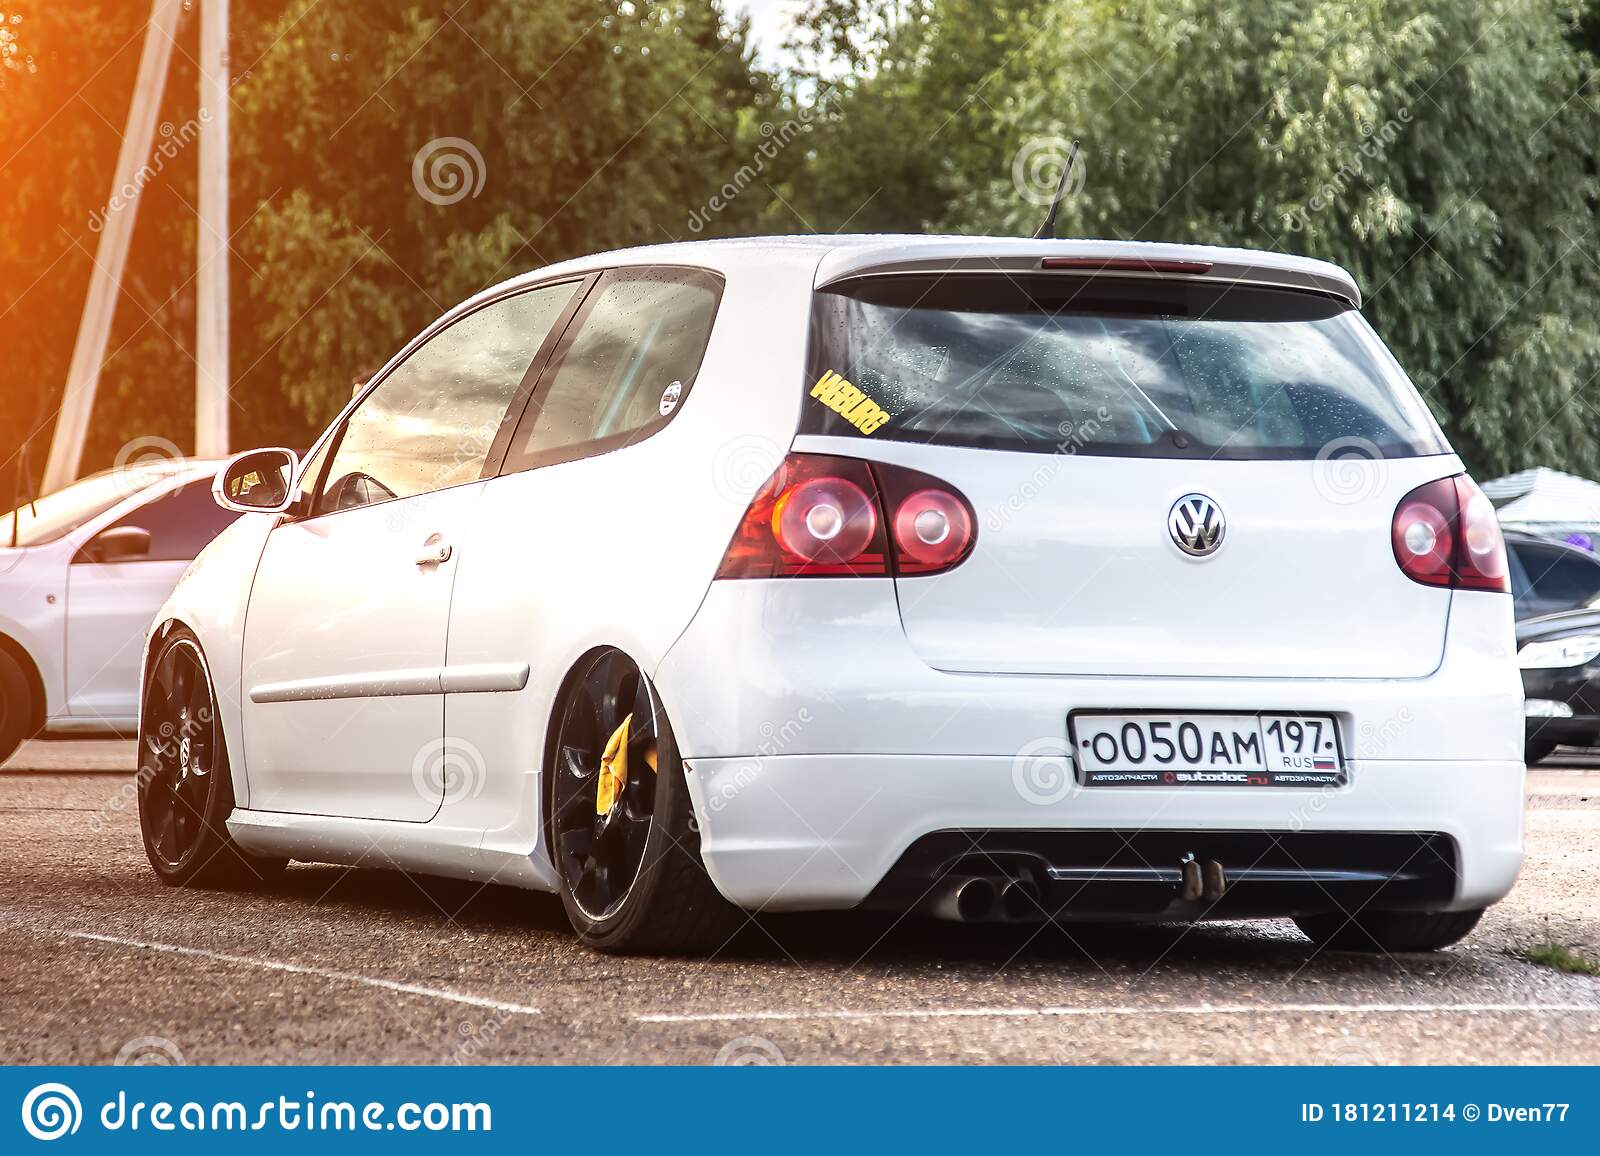 12 Mk5 Gti Photos Free Royalty Free Stock Photos From Dreamstime